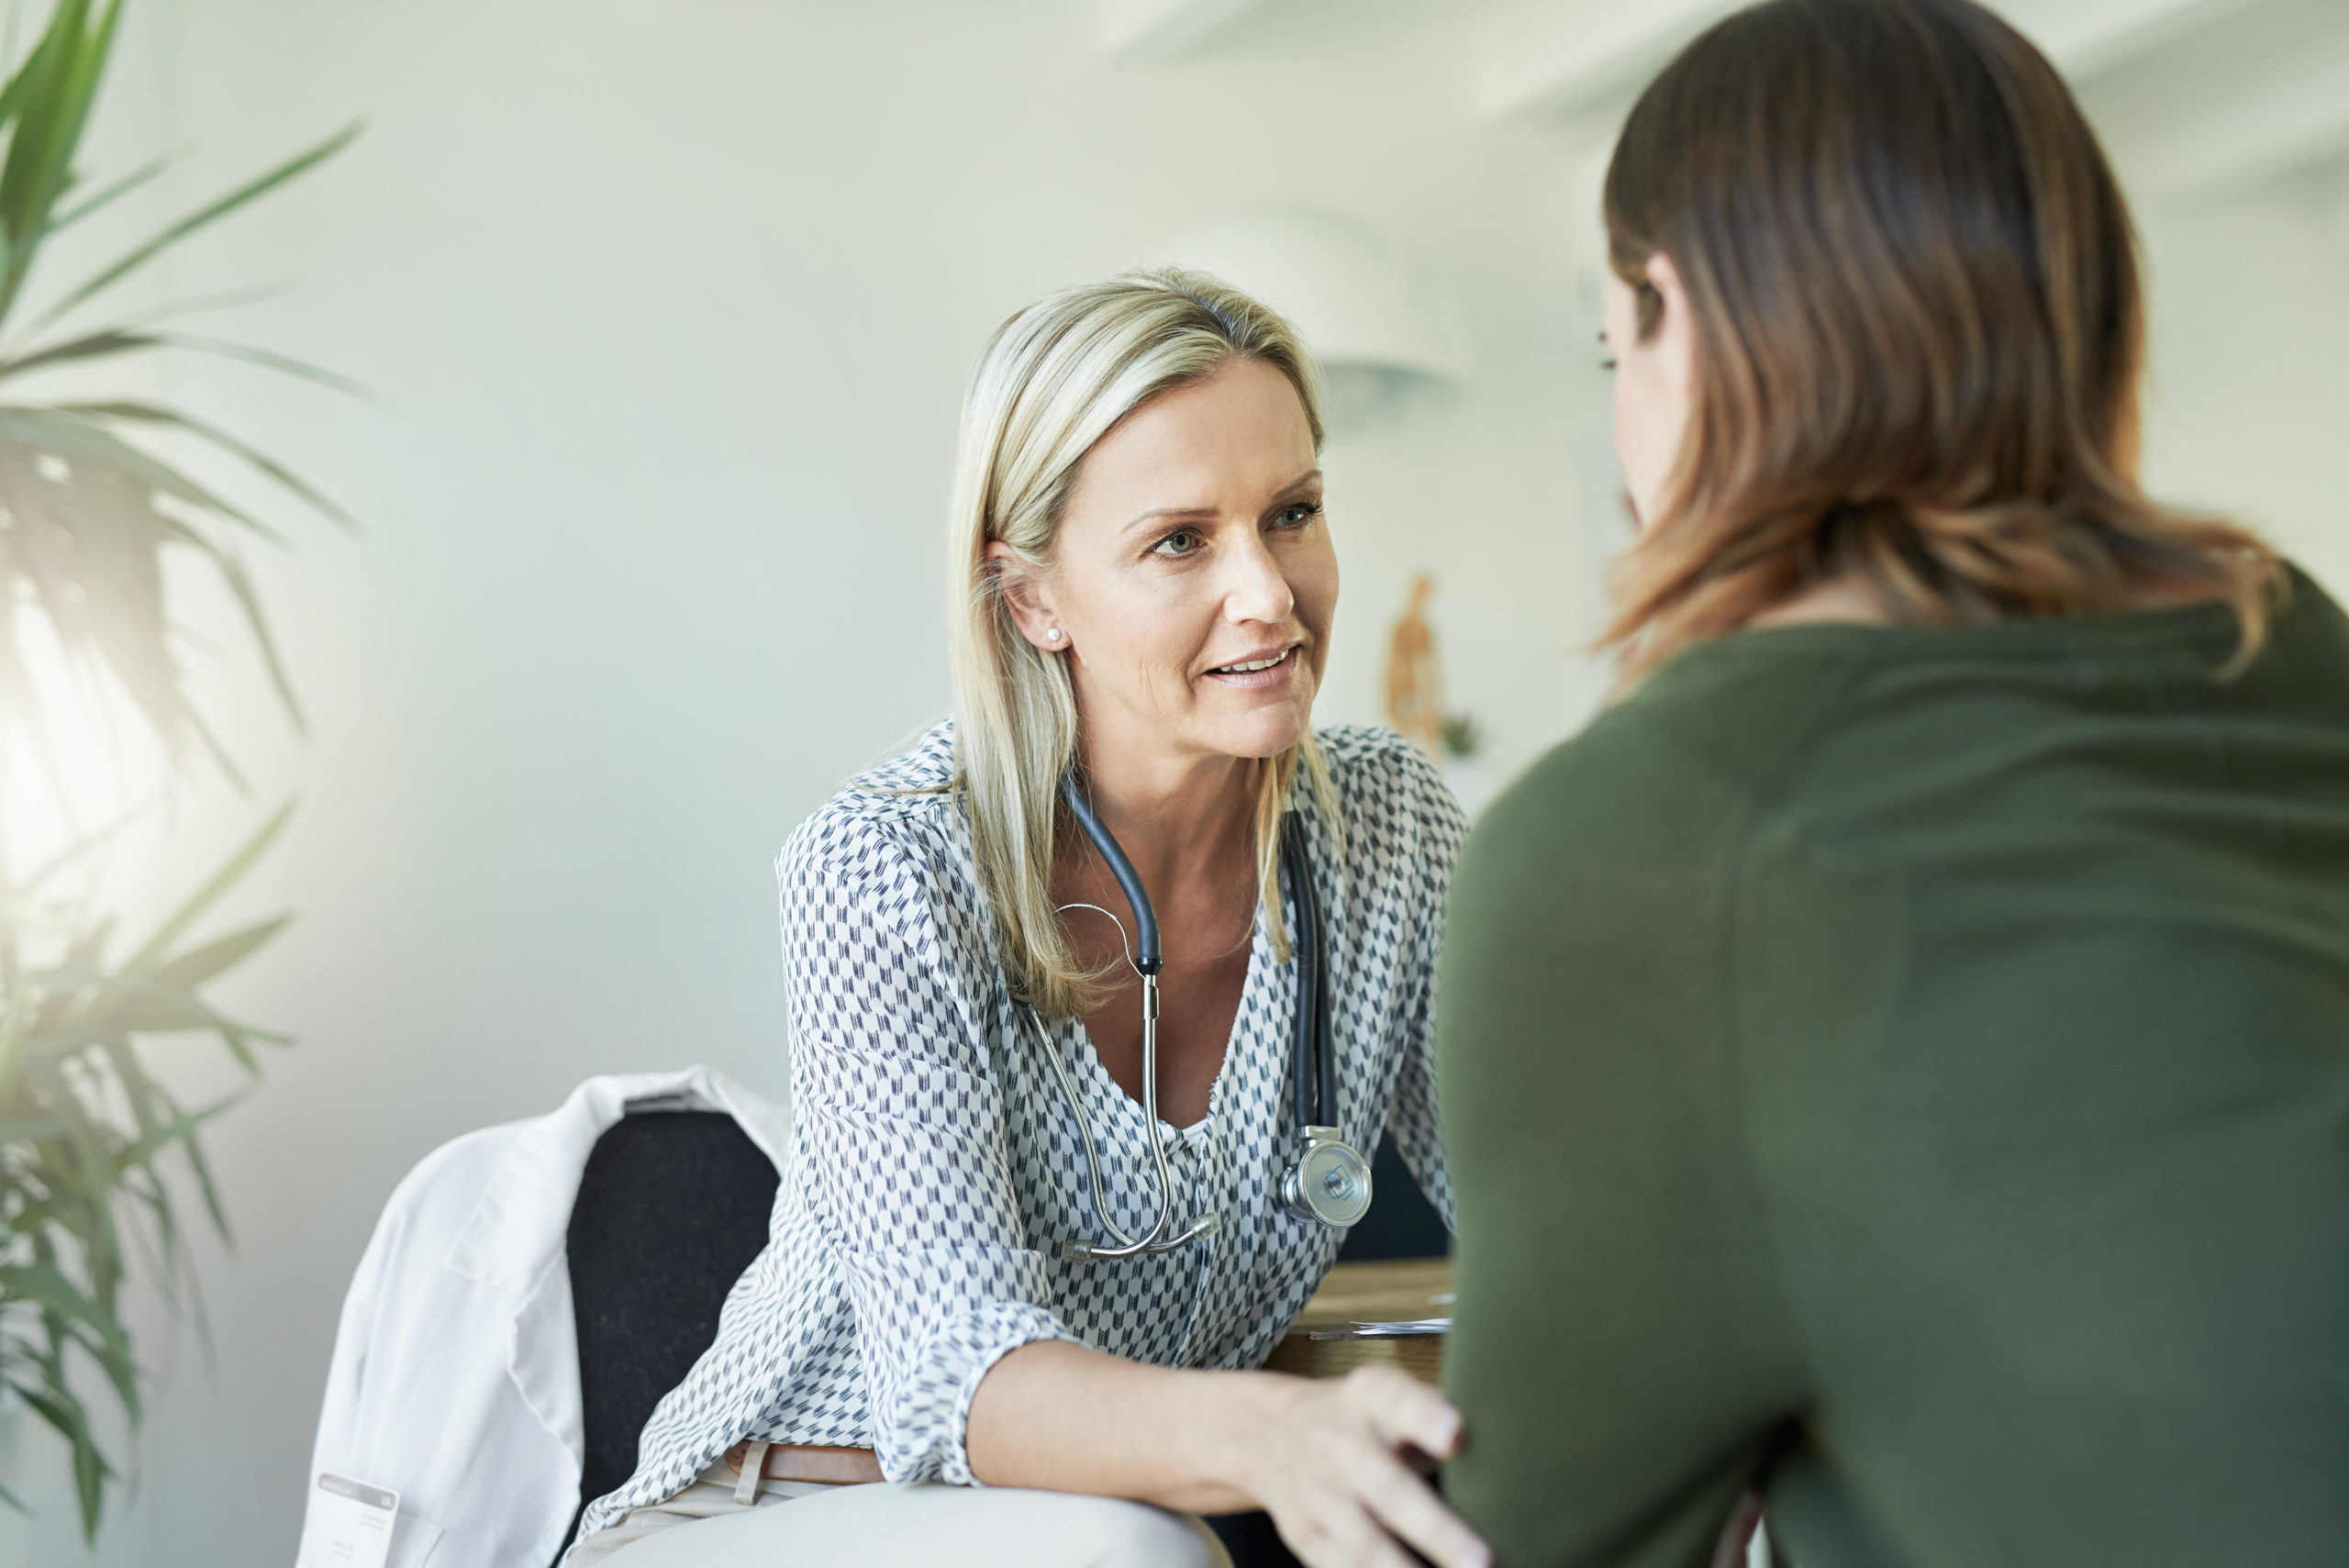 Trusting patient-physician relationship